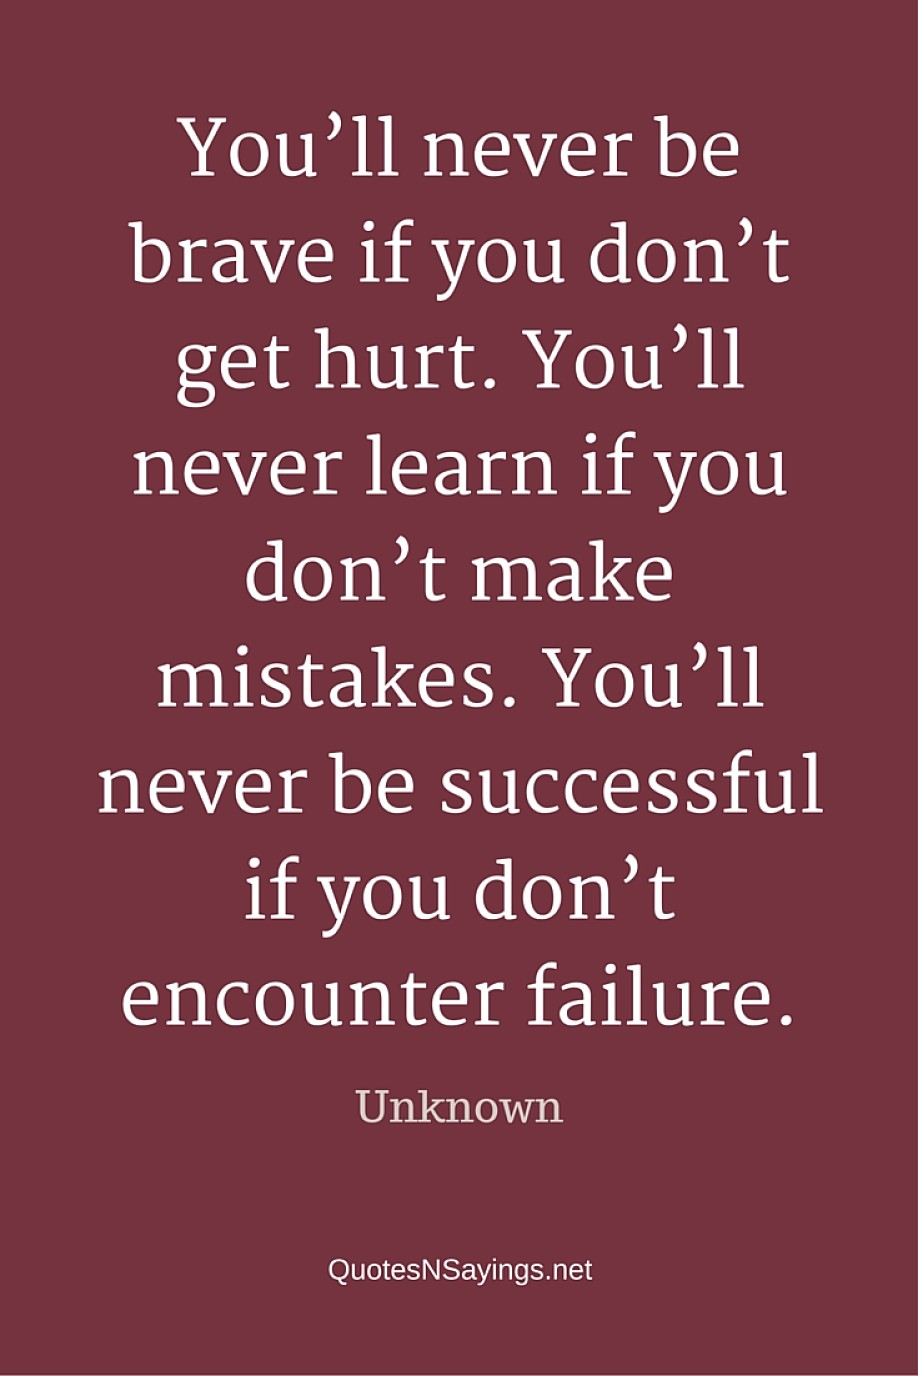 You'll never be brave if you don't get hurt. You'll never learn if you don't make mistakes. You'll never be successful if you don't encounter failure - Anonymous quote